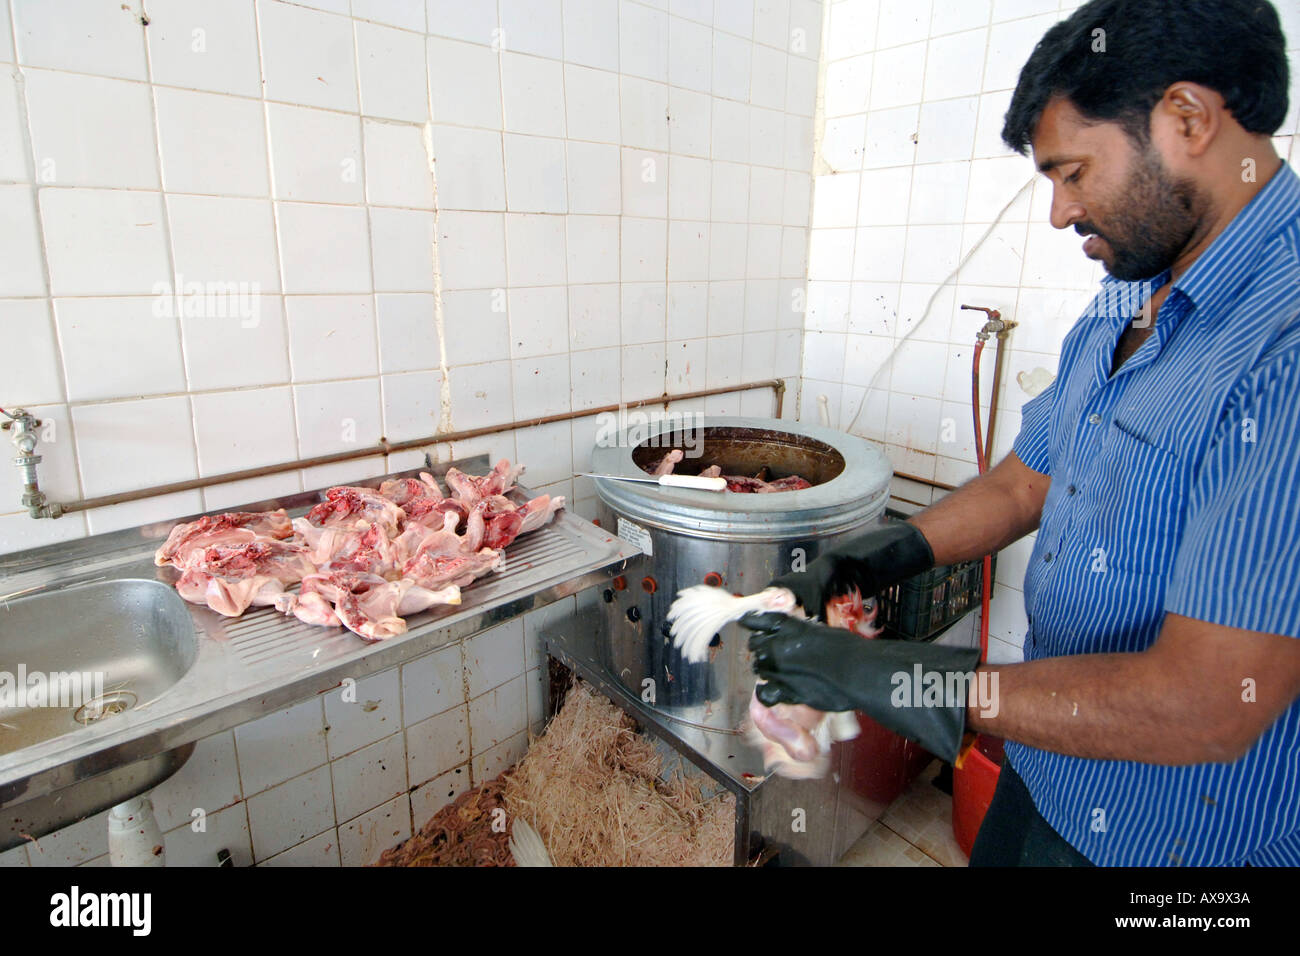 A butcher plucking a slaughtered chicken in a butchery in Doha, Qatar. Stock Photo